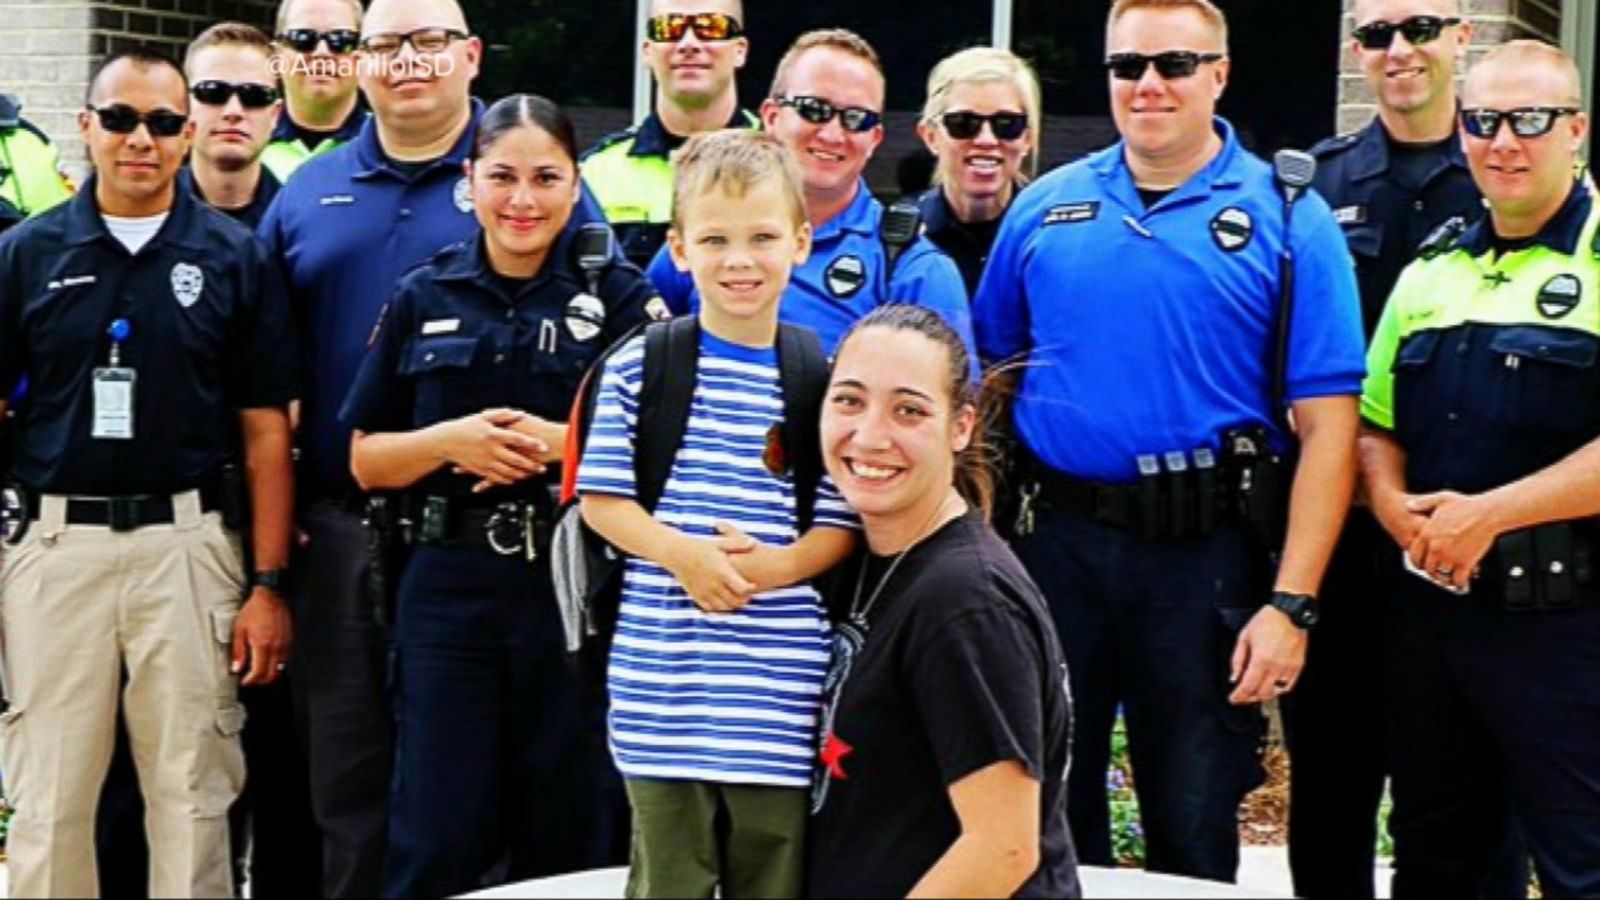 VIDEO: Fallen Police Officer's Son Gets a First Day of School Surprise